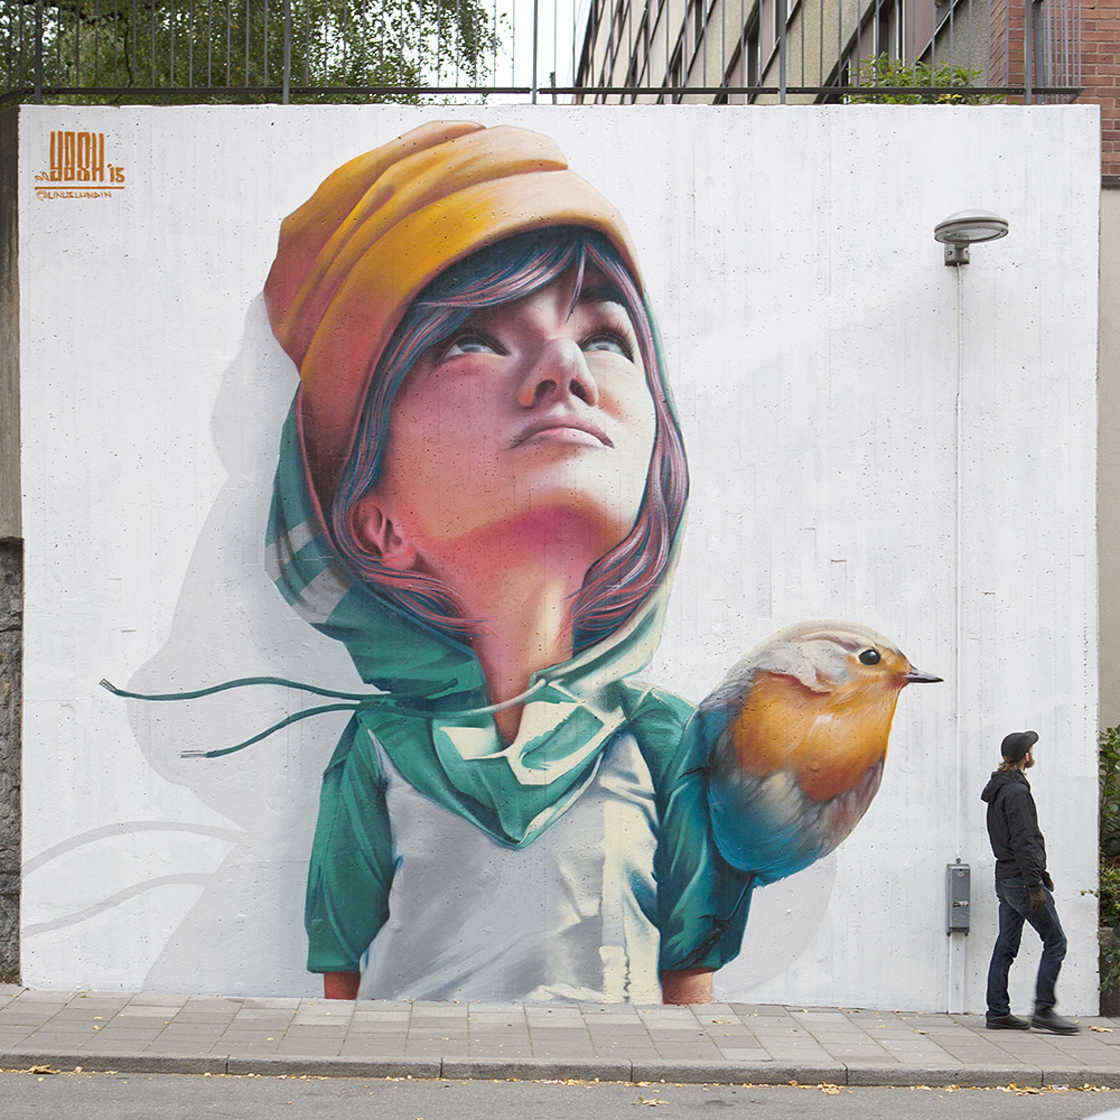 Kids and Colors - The street art by Yash One